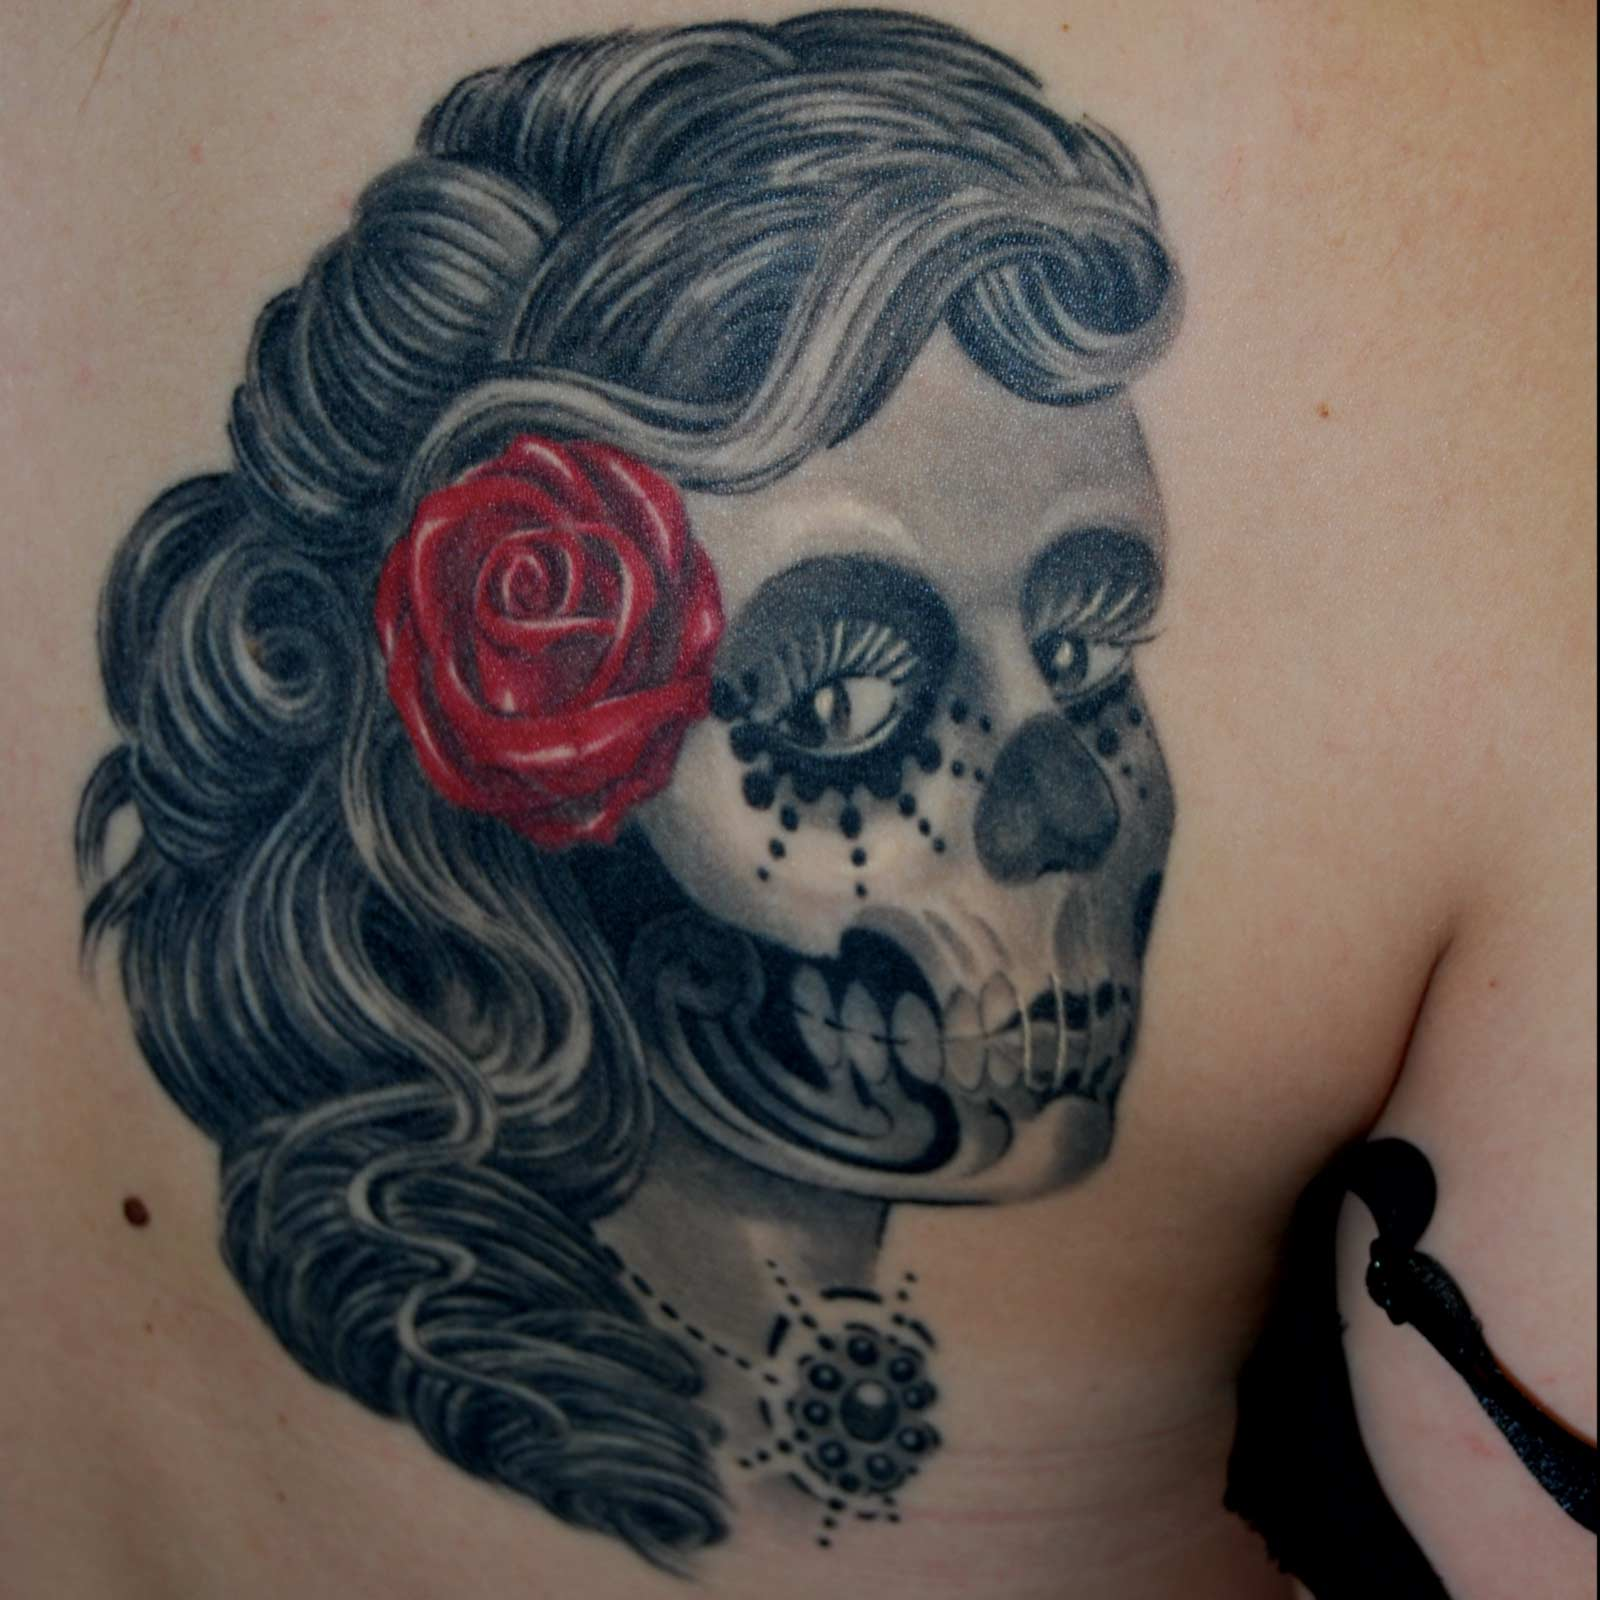 la catrina- sugarskull-day of the dead- totenkopf frau-tattoo muenchen